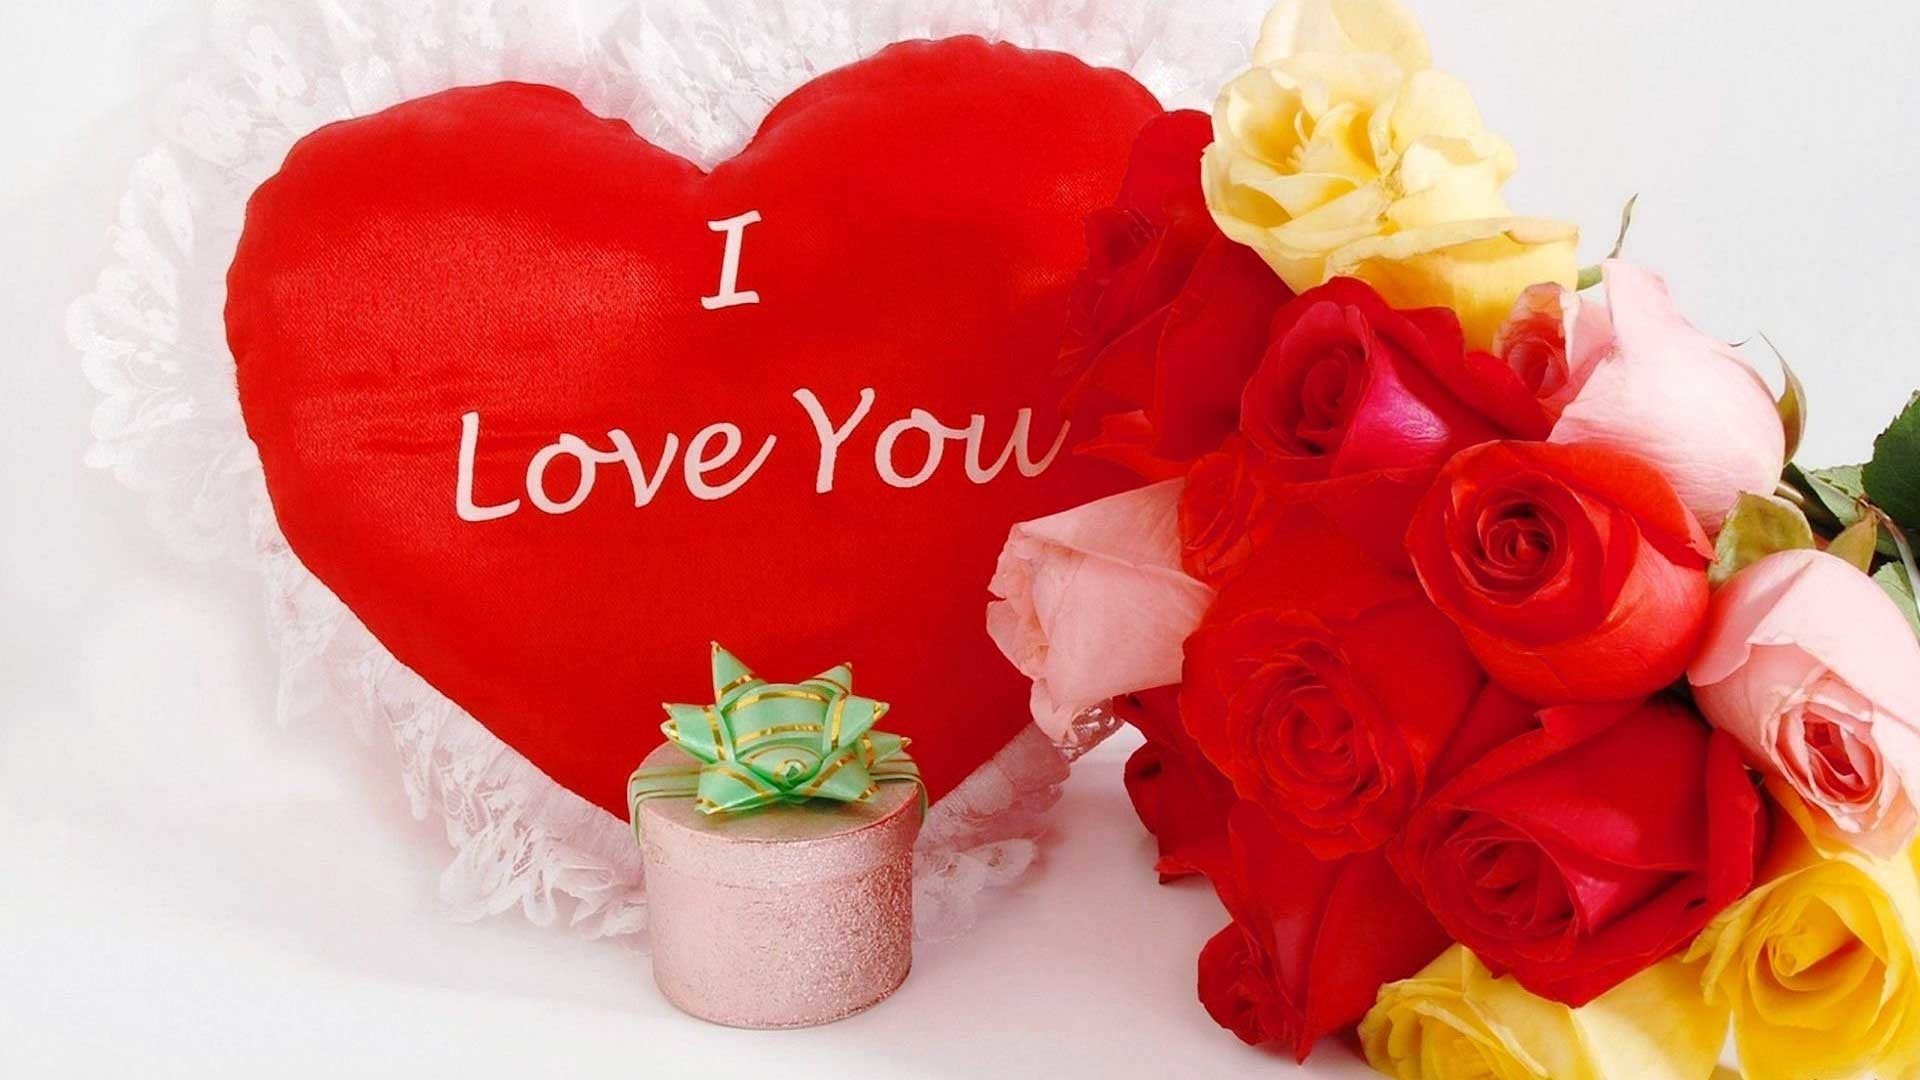 I Love You Images Hd: I Love U Images Wallpapers ·①